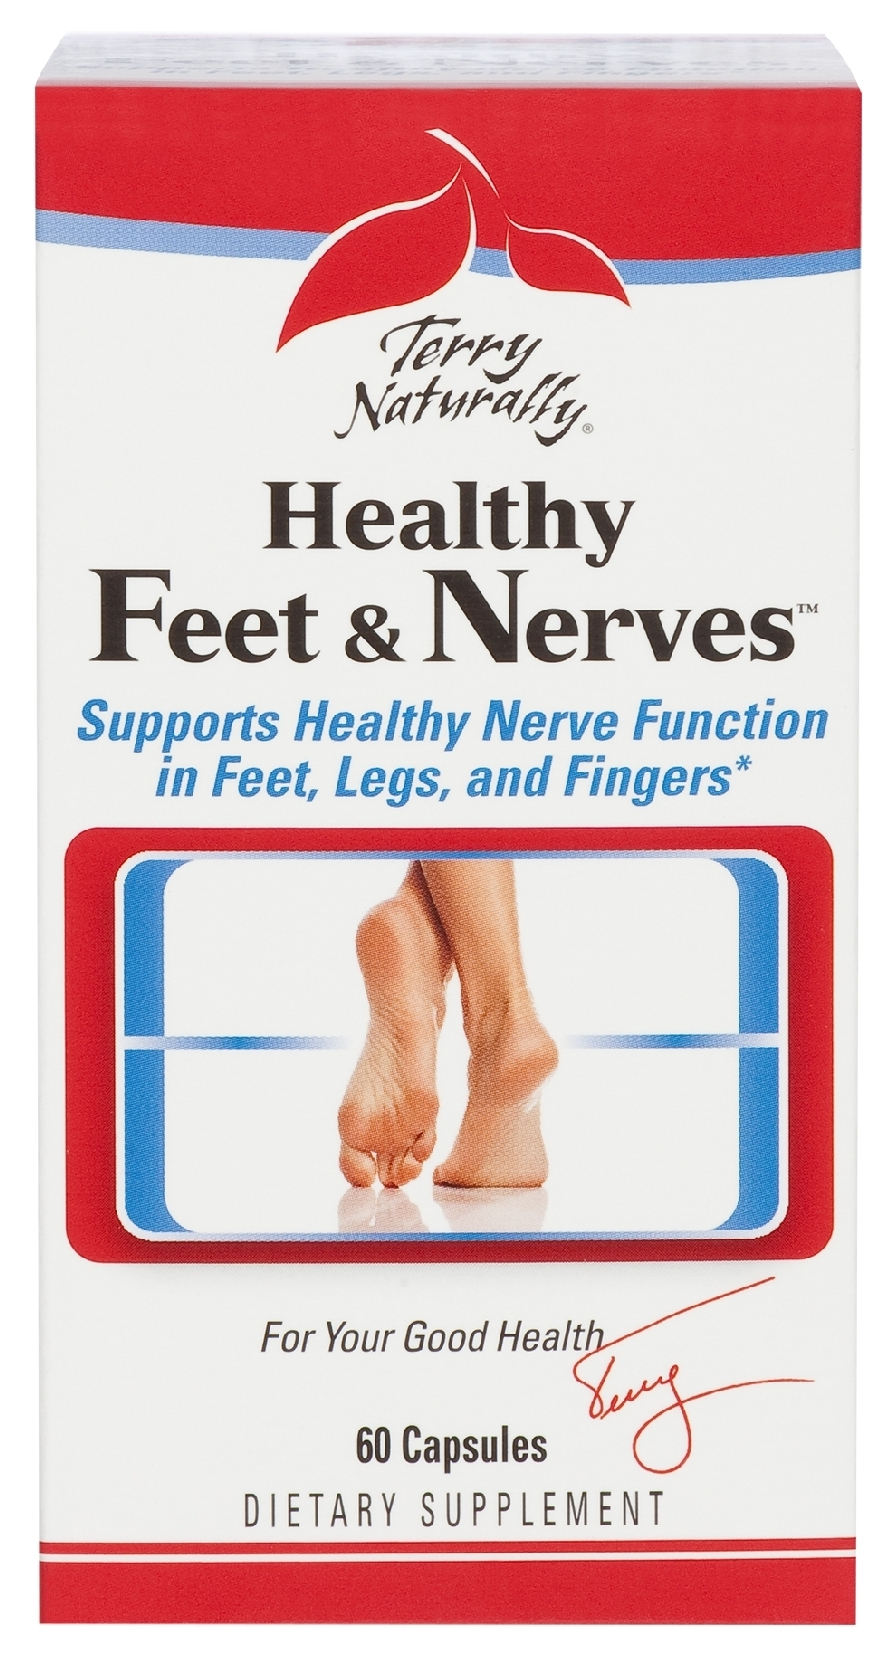 Terry Naturally Healthy Feet & Nerves 60 caps by EuroPharma